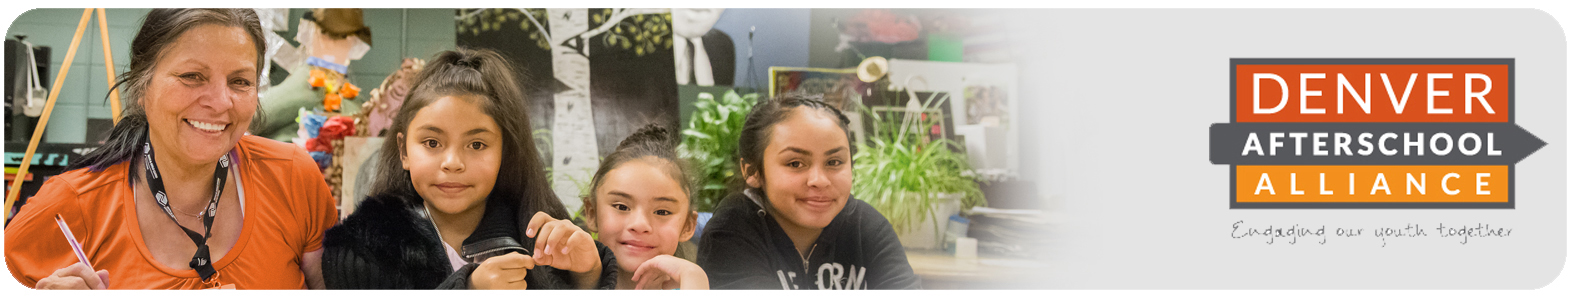 header image for the Denver Afterschool Alliance. It is not a link.